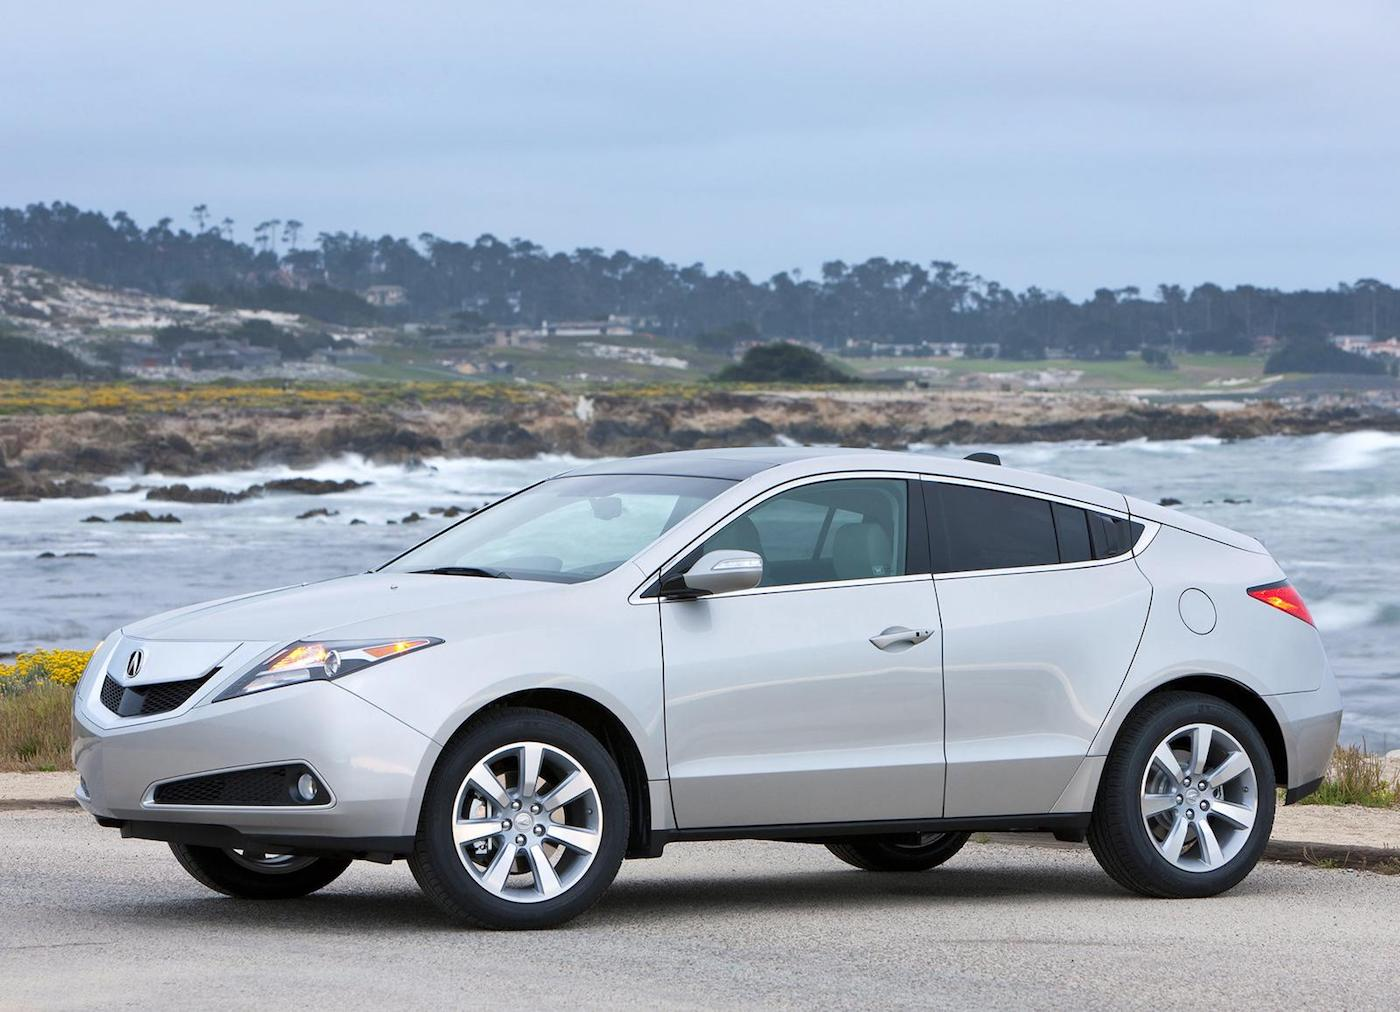 Acura SHAWD A Comprehensive Analysis YouWheel Your Car Expert - In acura com